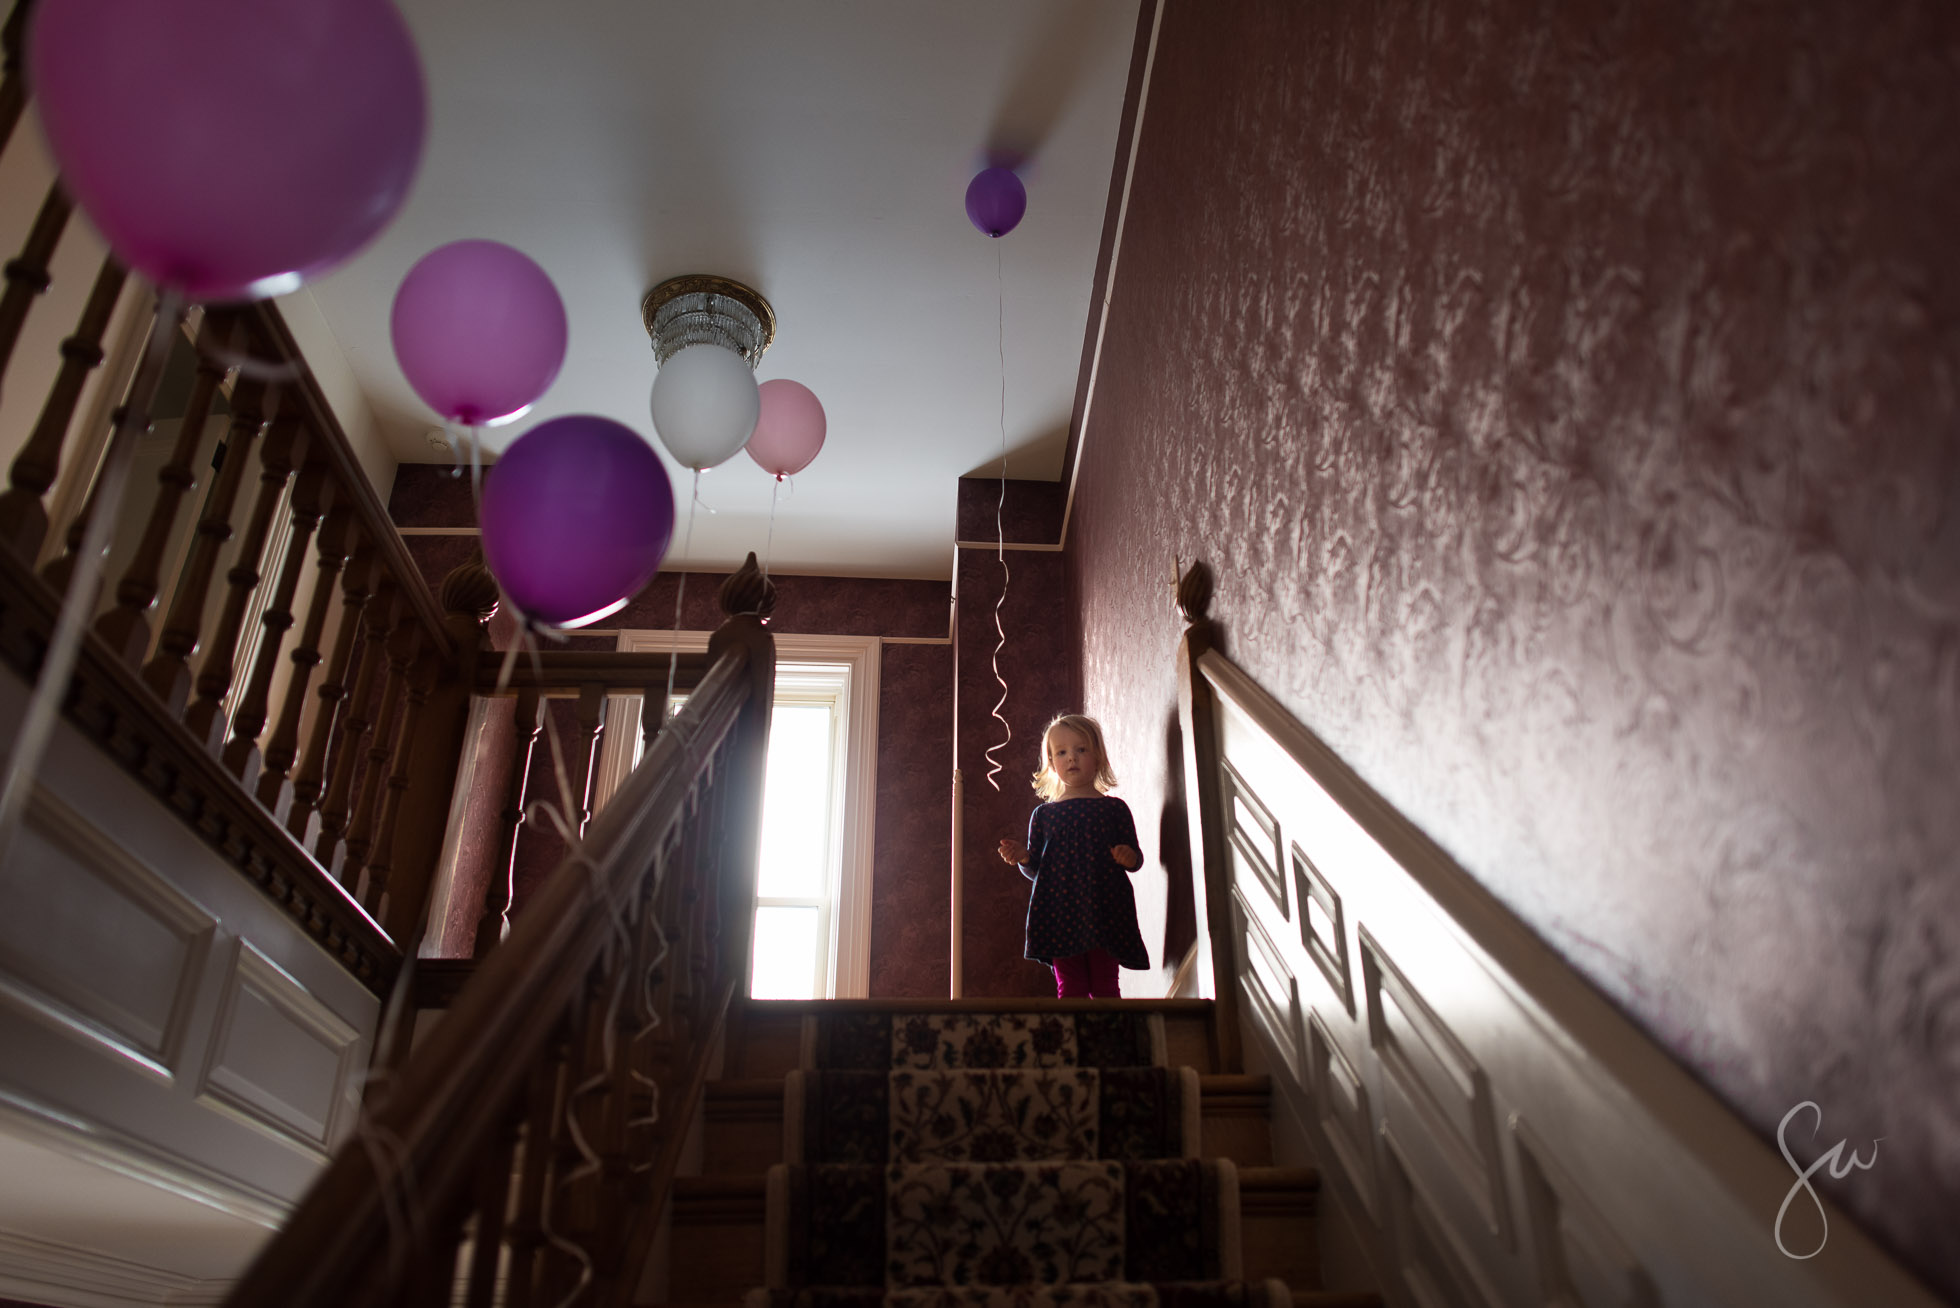 Everyday-Photo-of-Three-Year-Old-Celebrating-Her-Birthday-with-Pink-and-Purple-Balloons-3372